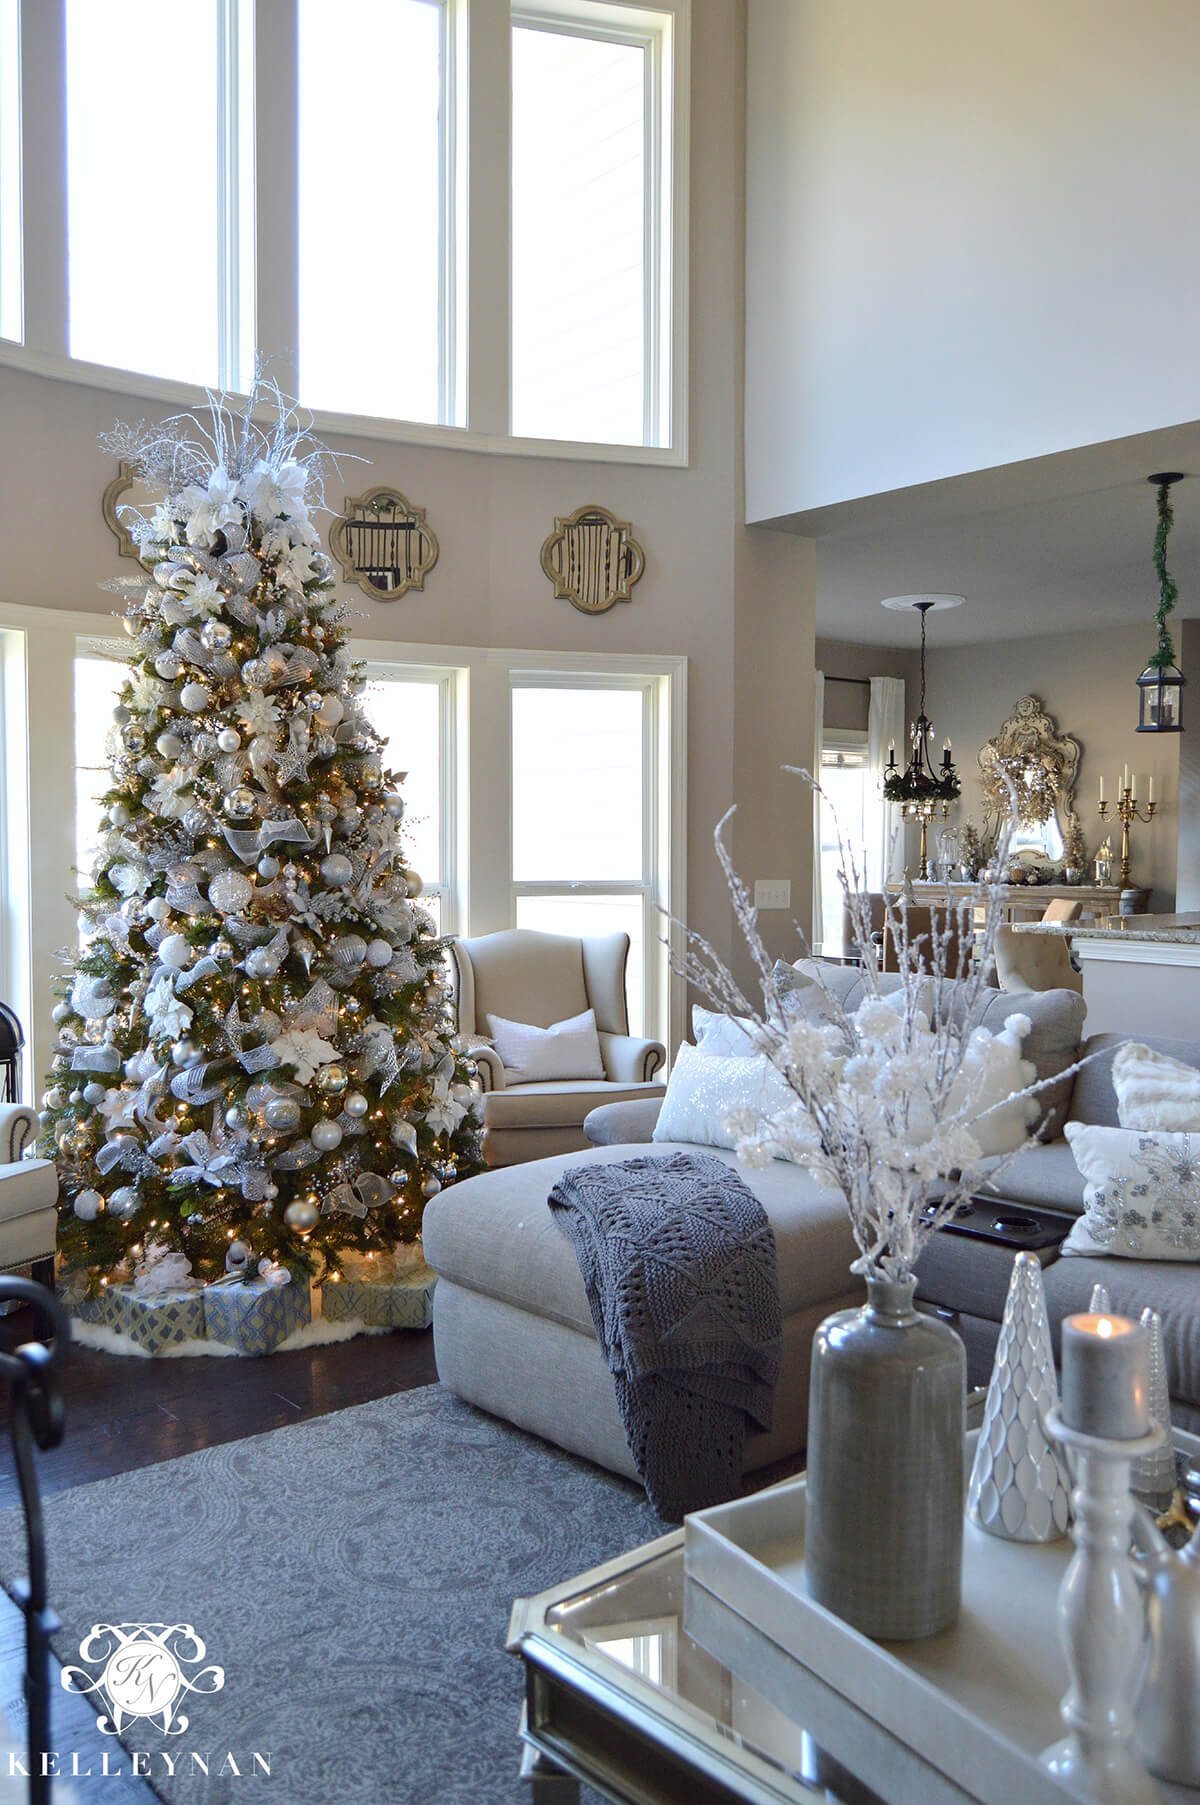 images of christmas living room decorations style quiz 32 best decor ideas and designs for 2019 12 tree in silvery white grandeur